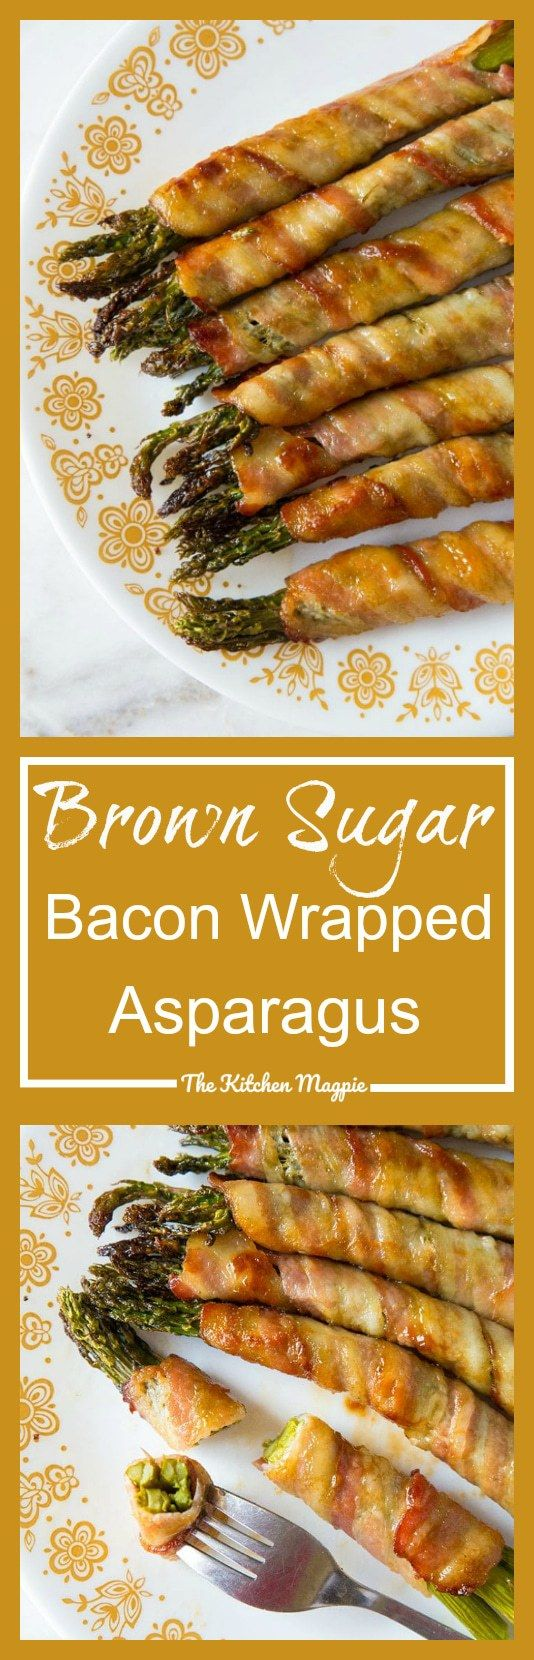 Embrace springtime asparagus by wrapping them in bacon and dousing them in this brown sugar garlic butter sauce! Bacon wrapped asparagus for the win!